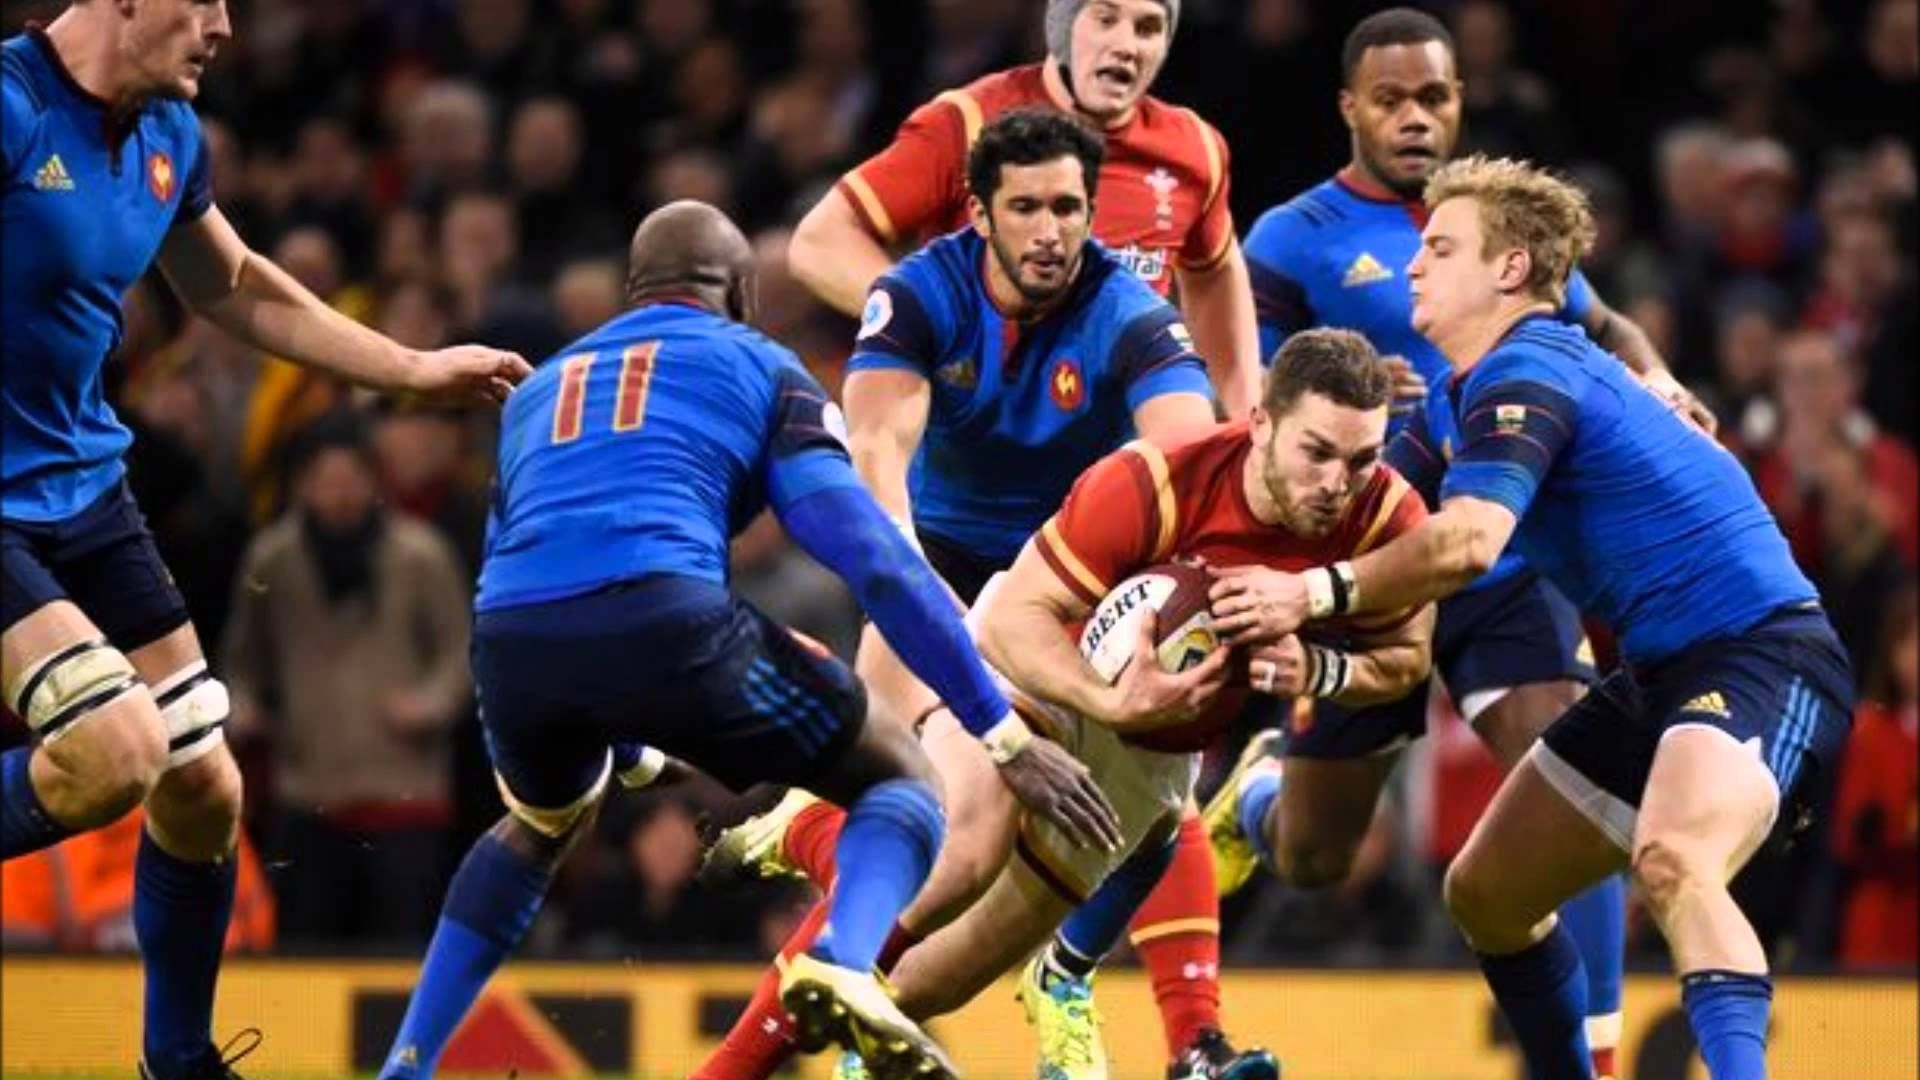 Wales 19 France 10 Six Nations 2016 - 5th straight Welsh win vs France